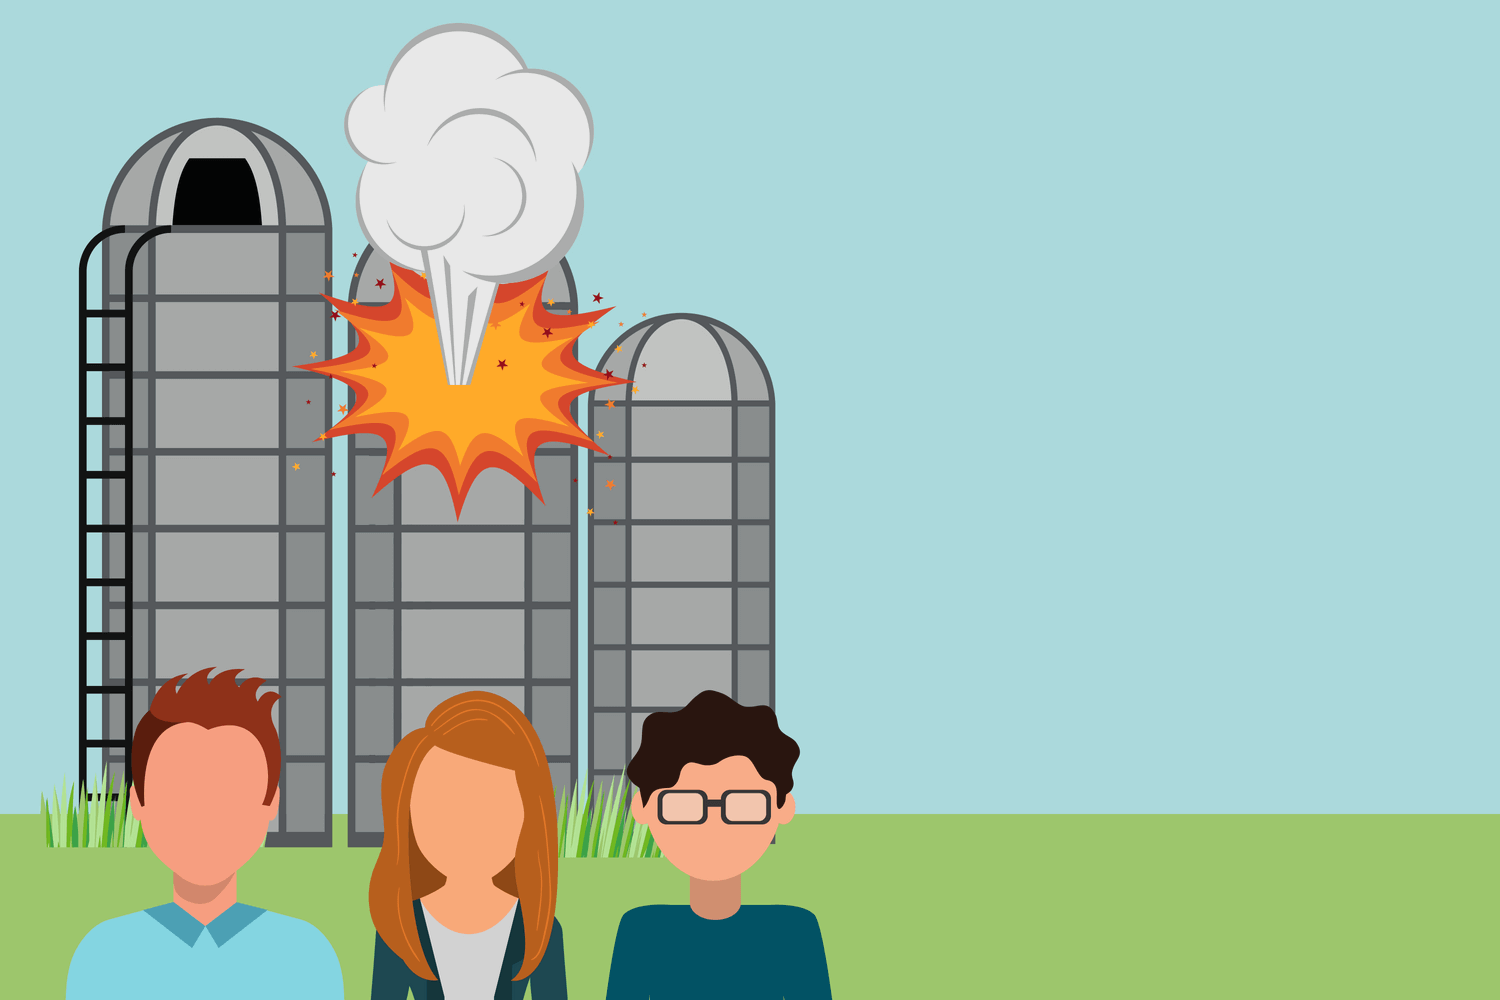 Busting Silos to Increase Employee Engagement